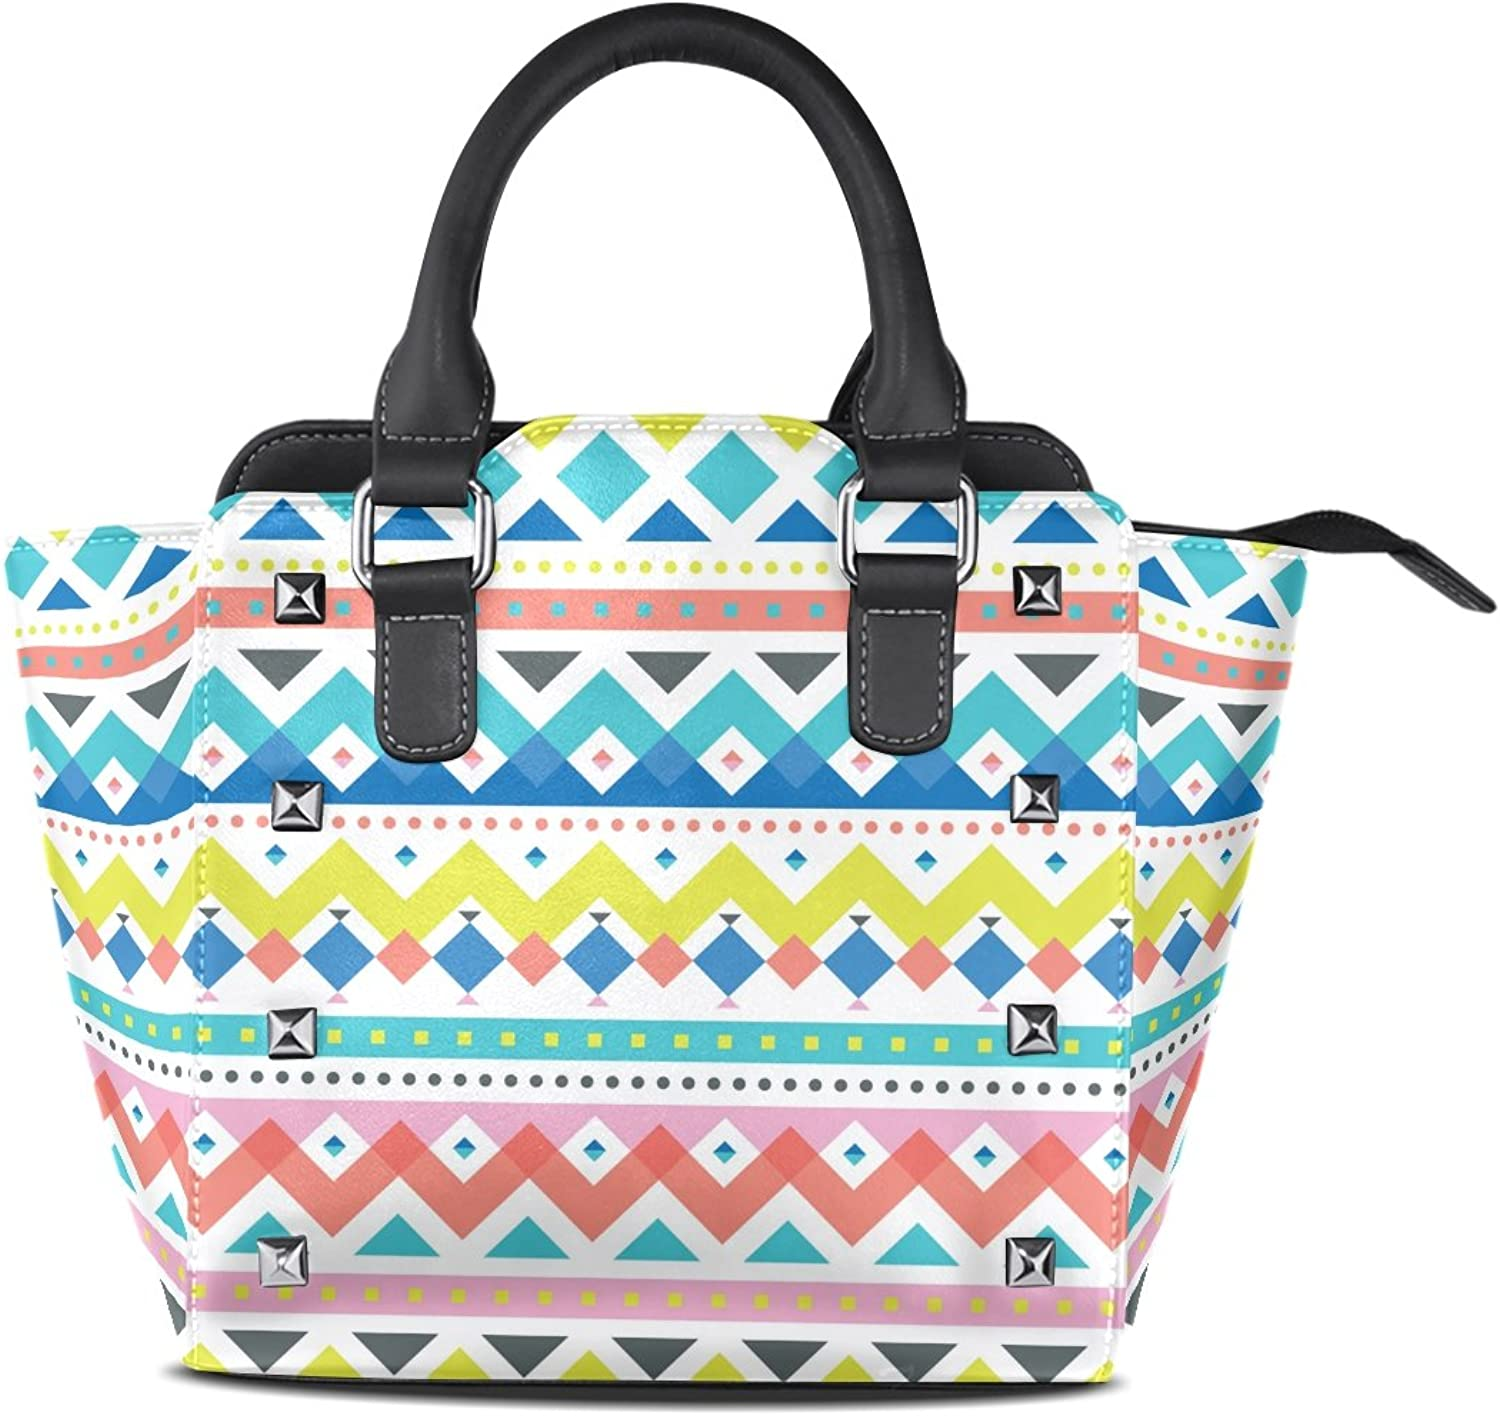 My Little Nest Women's Top Handle Satchel Handbag Aztec Chevron Geometric Art Print Ladies PU Leather Shoulder Bag Crossbody Bag